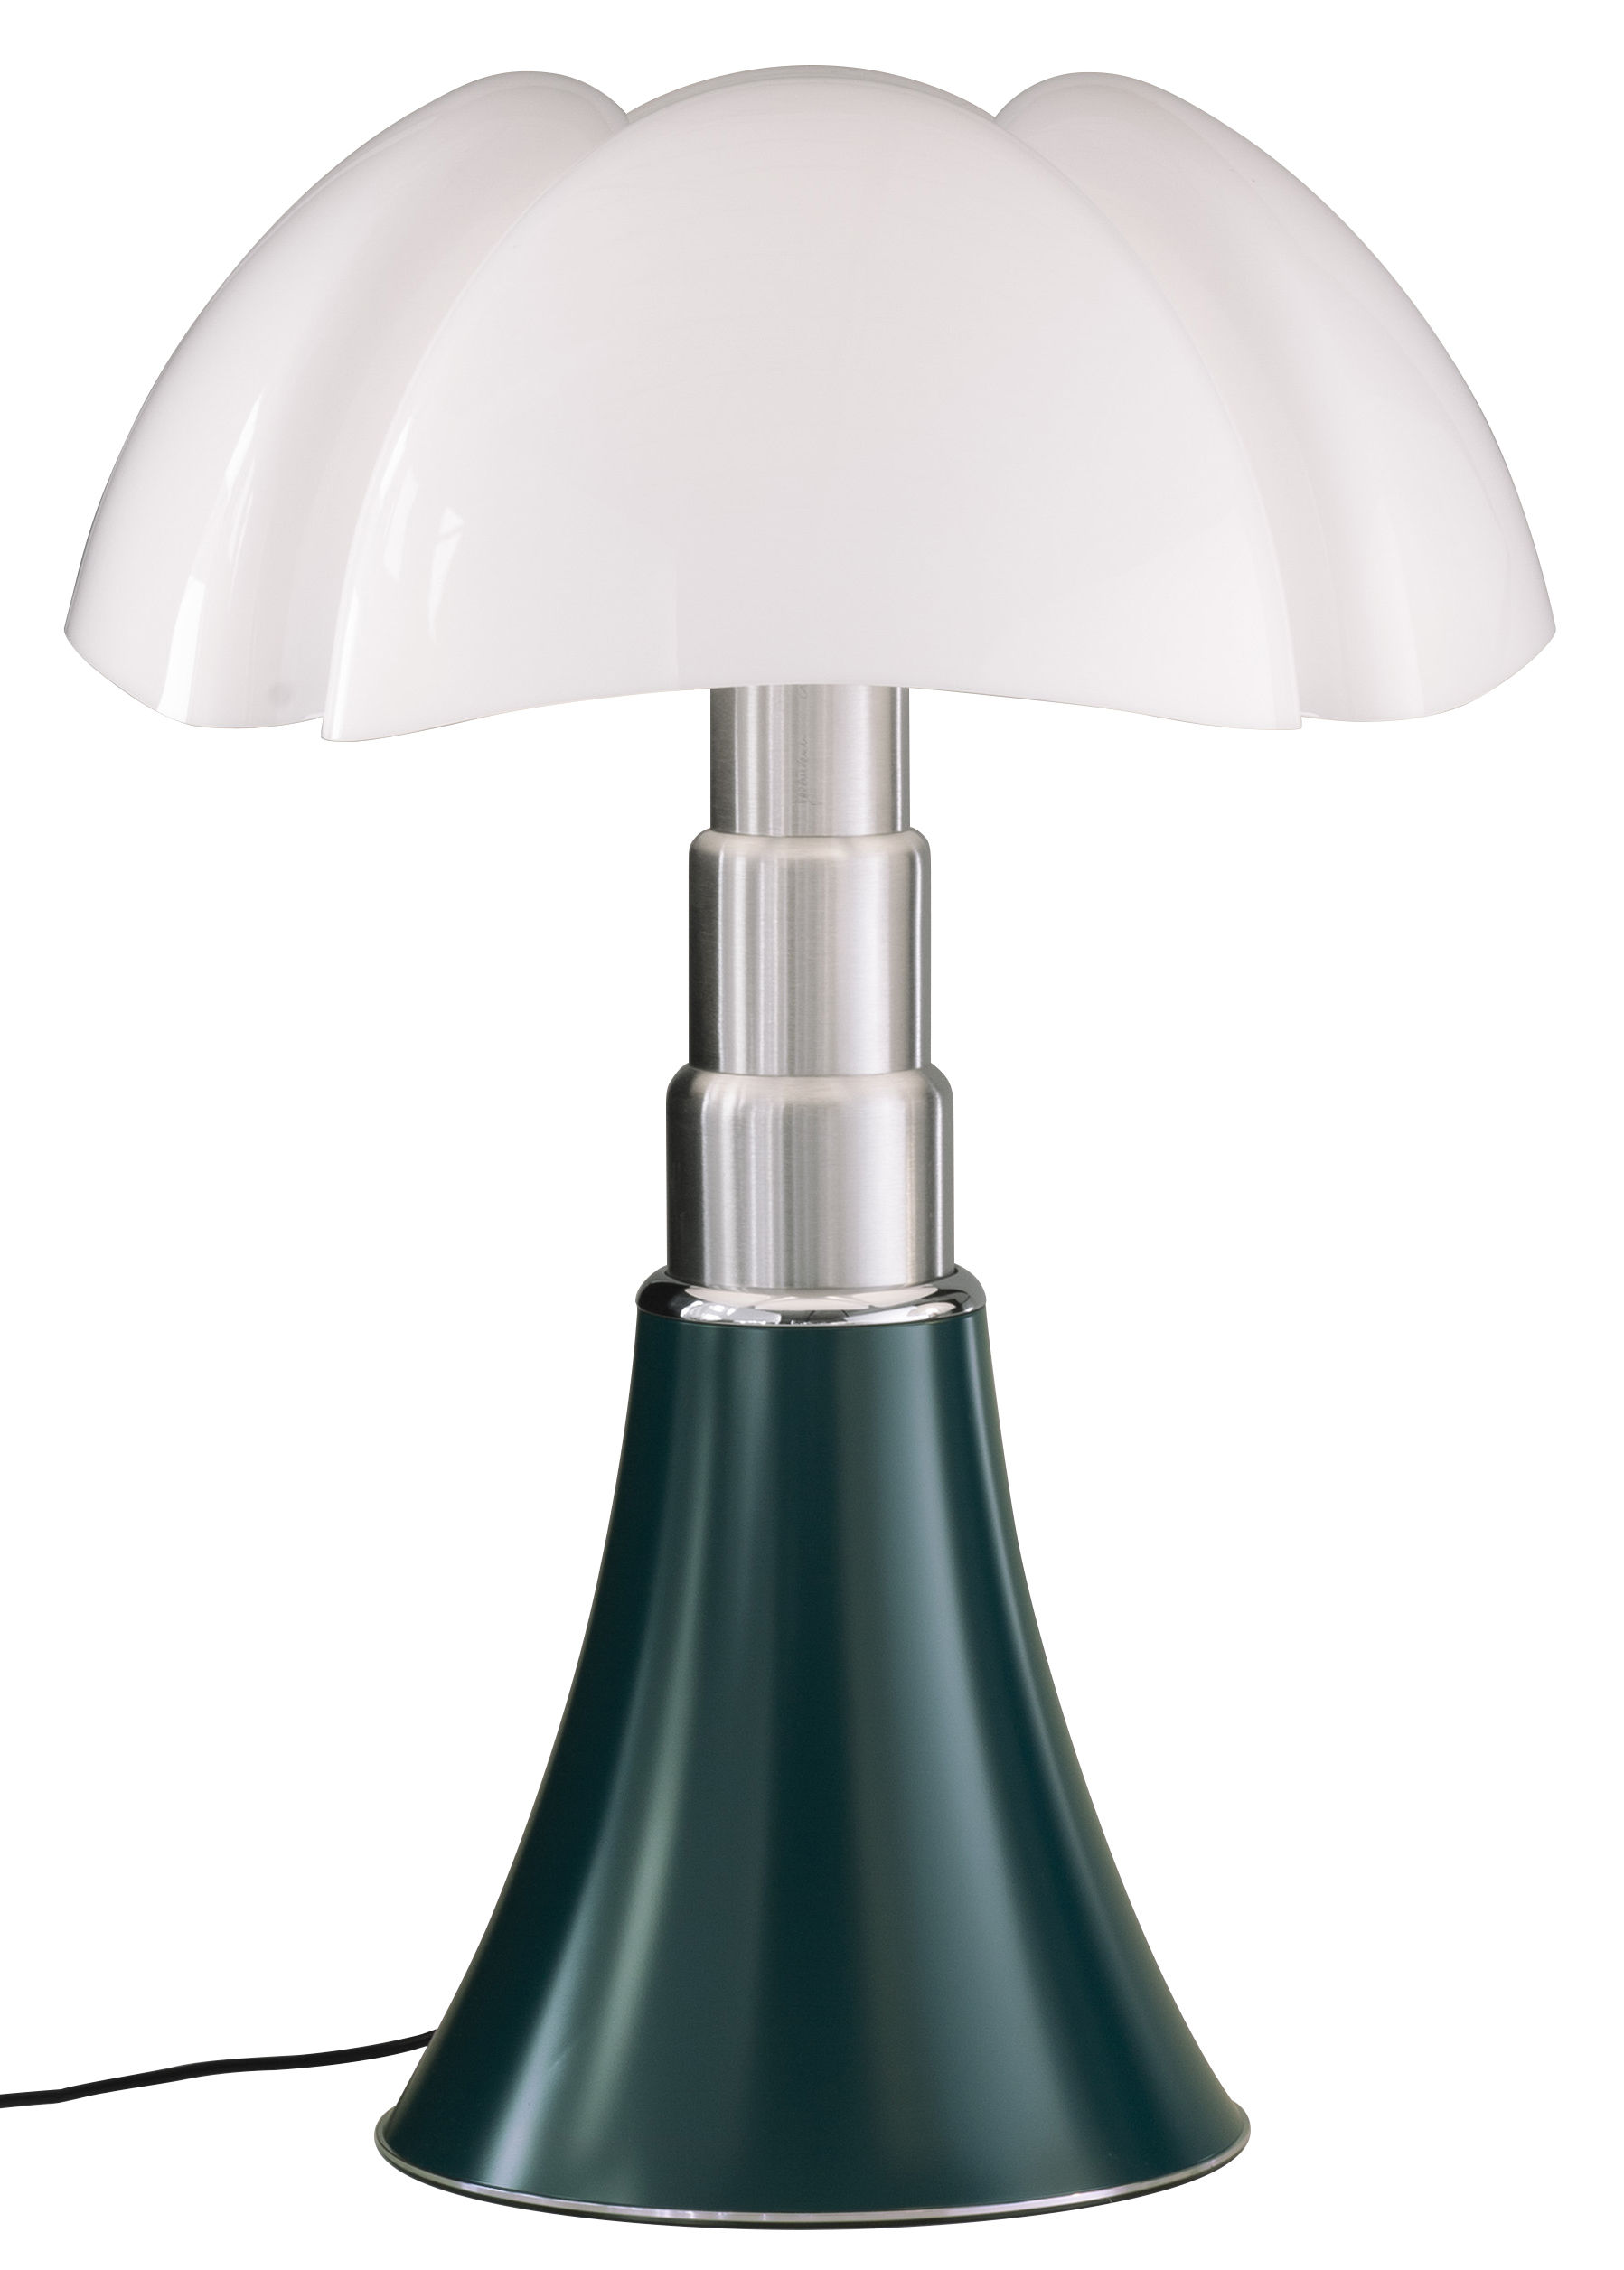 Lighting - Table Lamps - Pipistrello Table lamp - / H 66 to 86 cm by Martinelli Luce - Agave Green - Galvanized steel, Lacquered aluminium, Methacrylate